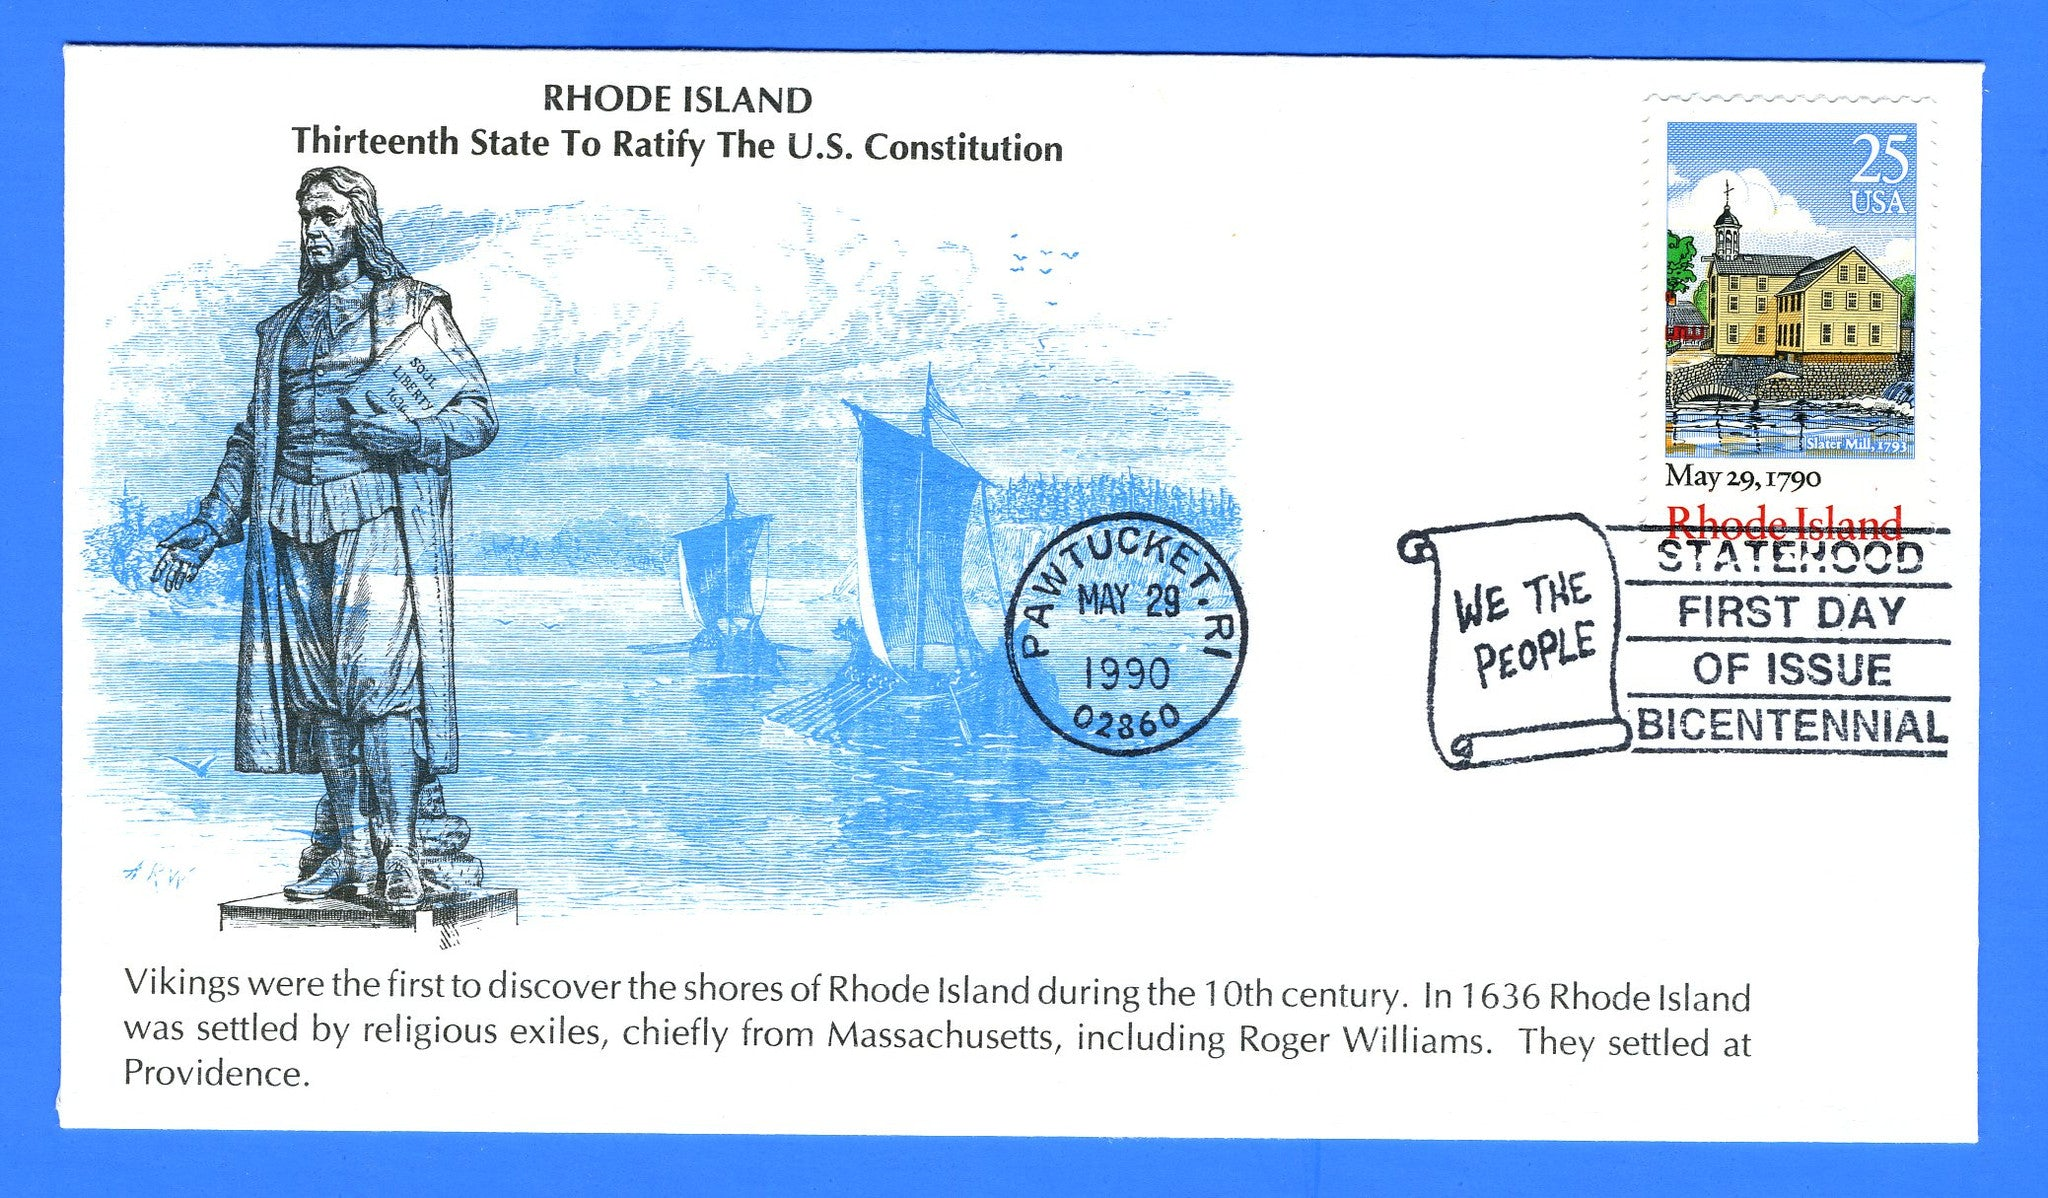 Scott 2341 25c Rhode Island Constitution Ratified First Day Cover by KMC Venture